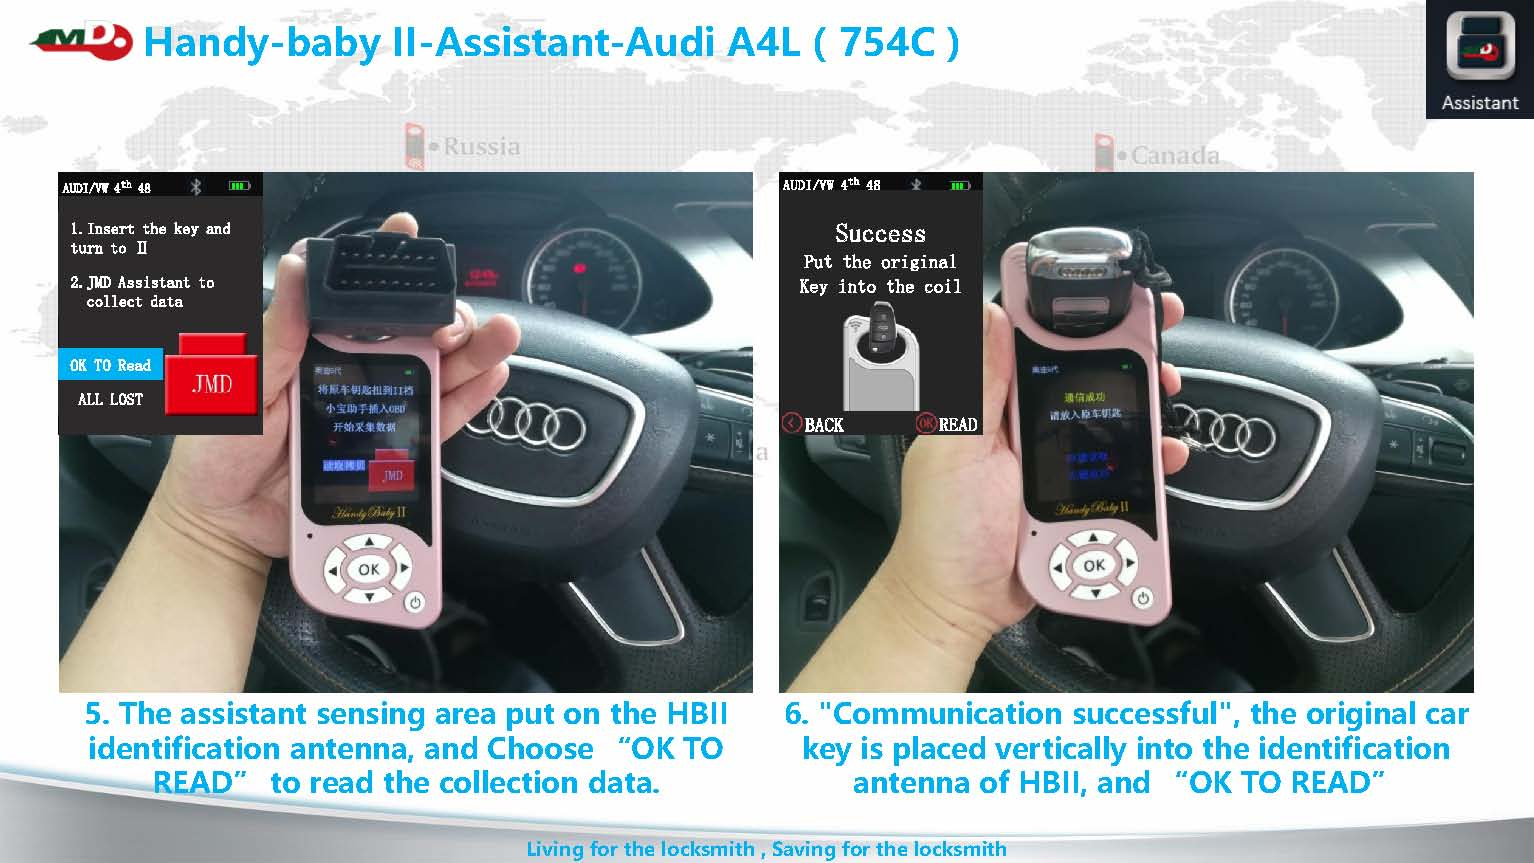 jmd-handy-baby-2-and -jmd-assistant-guide-04